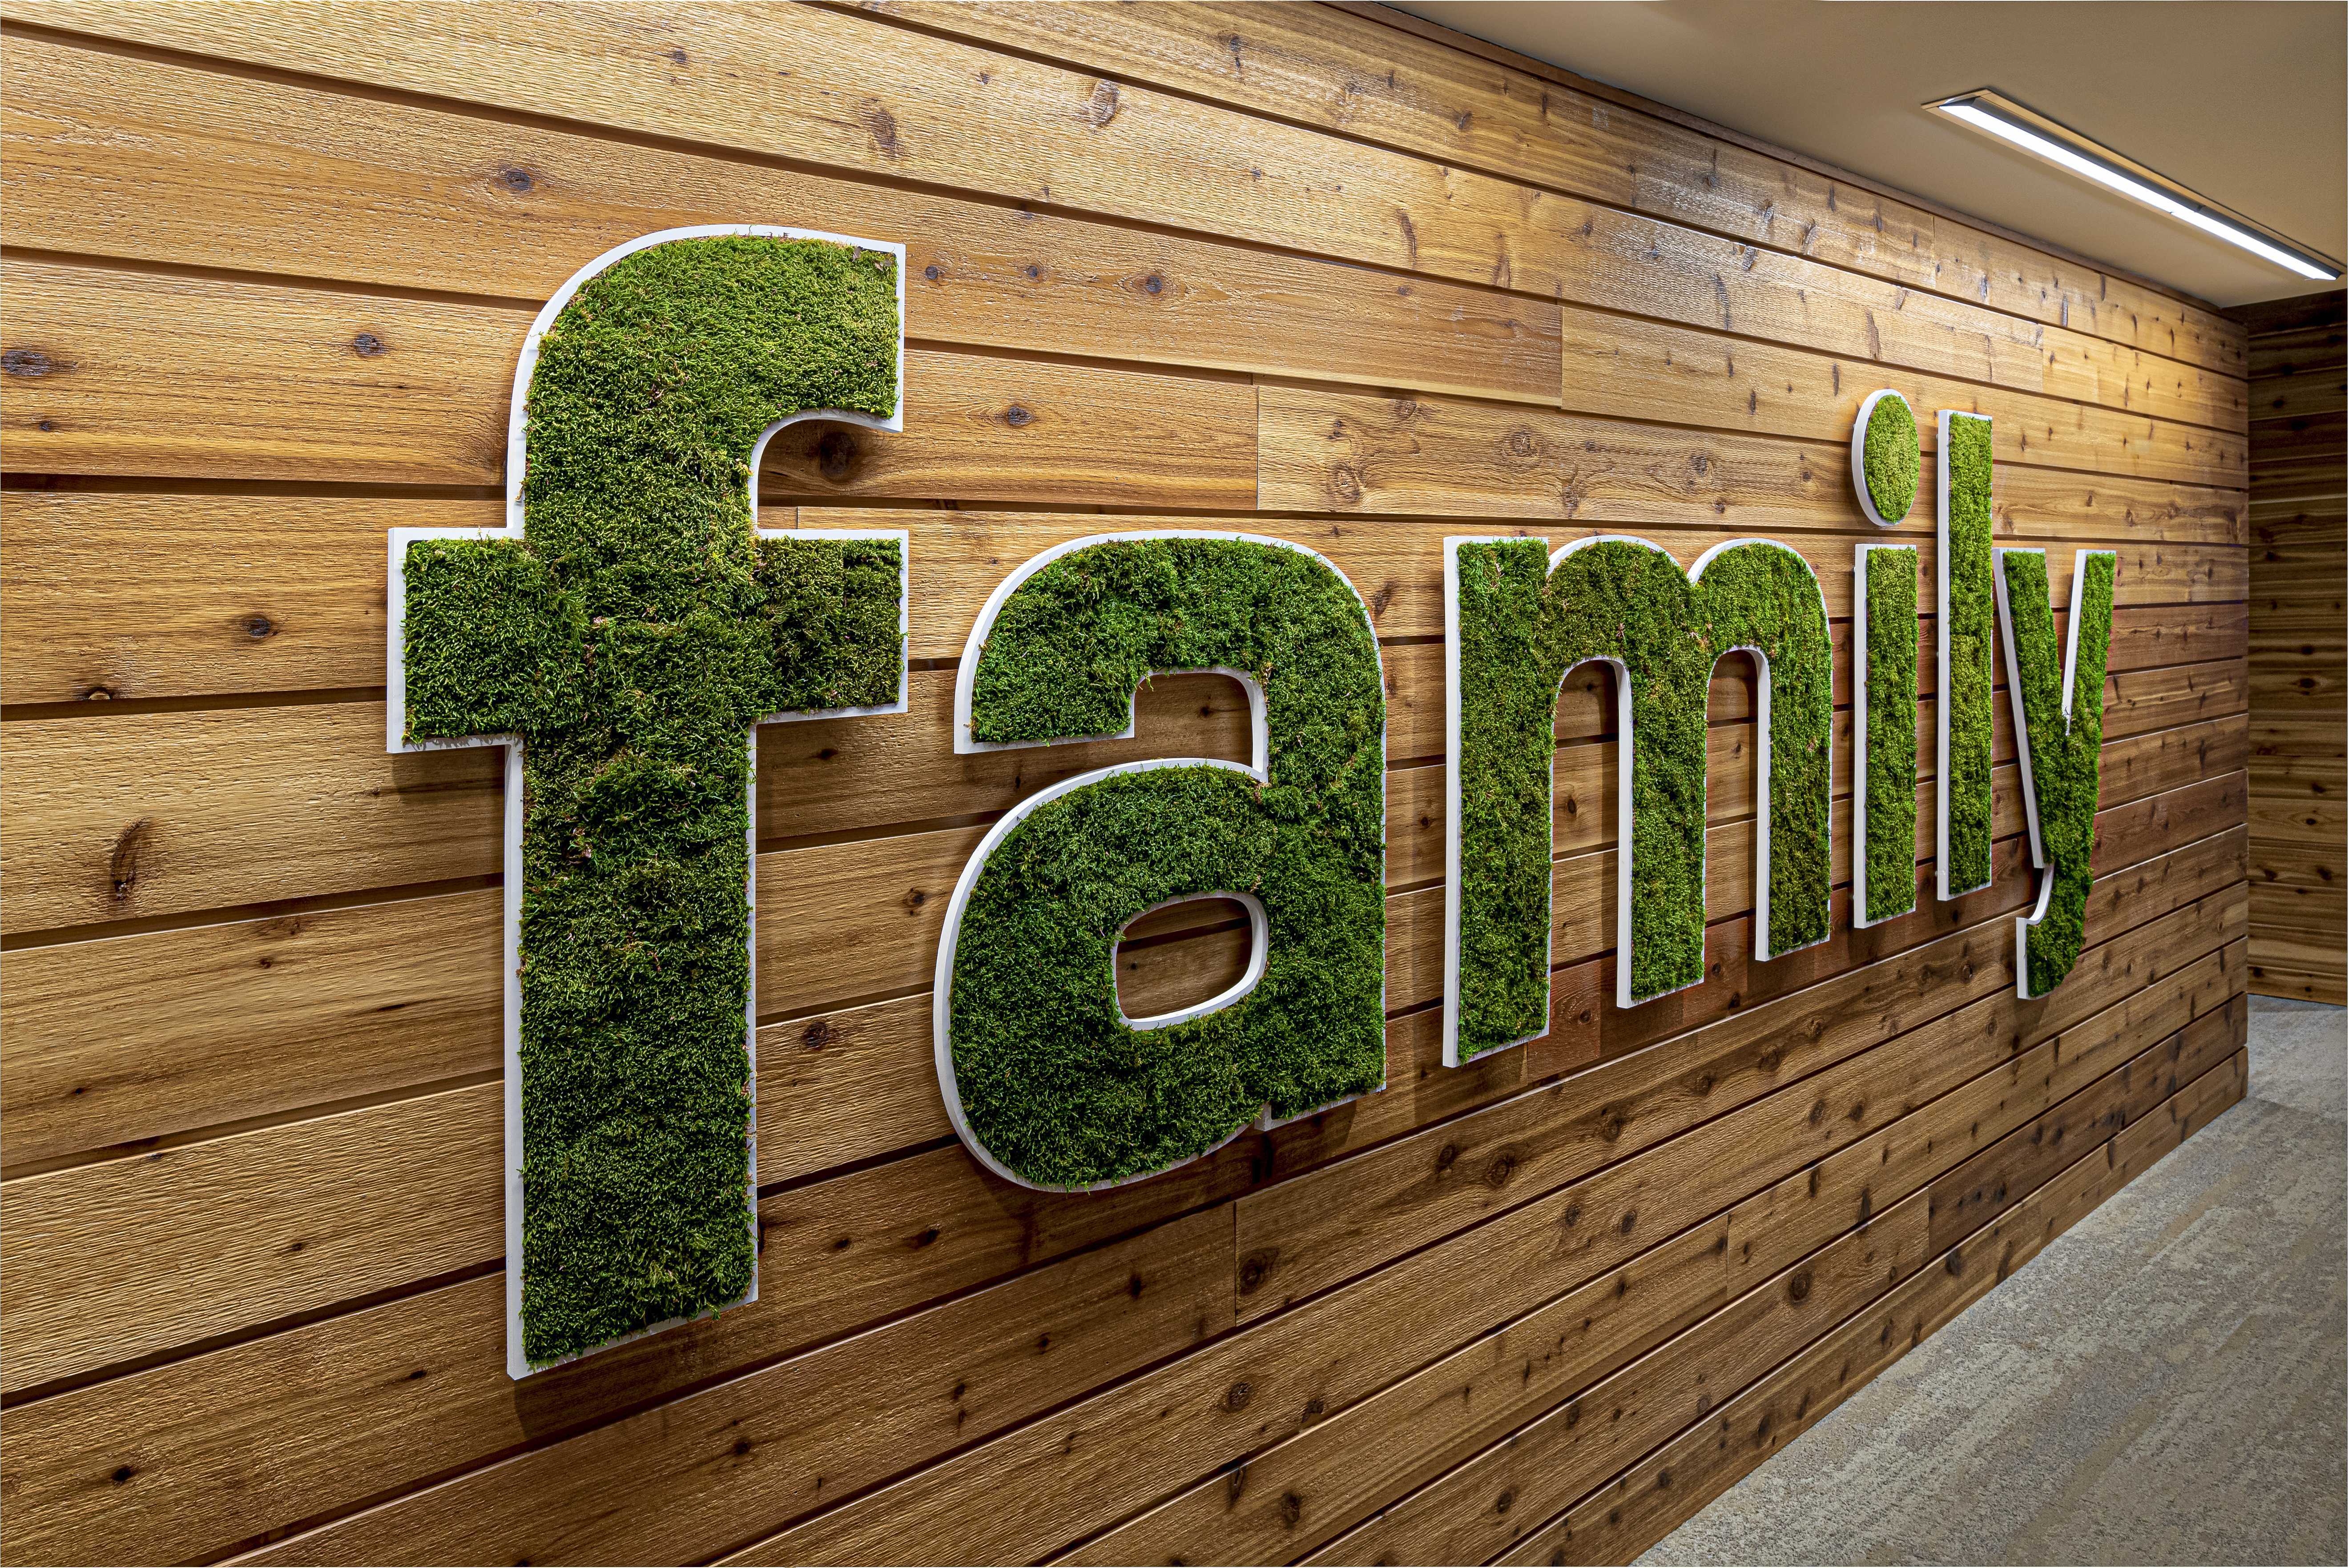 texas-roadhouse-office-family-greenery-passthrough